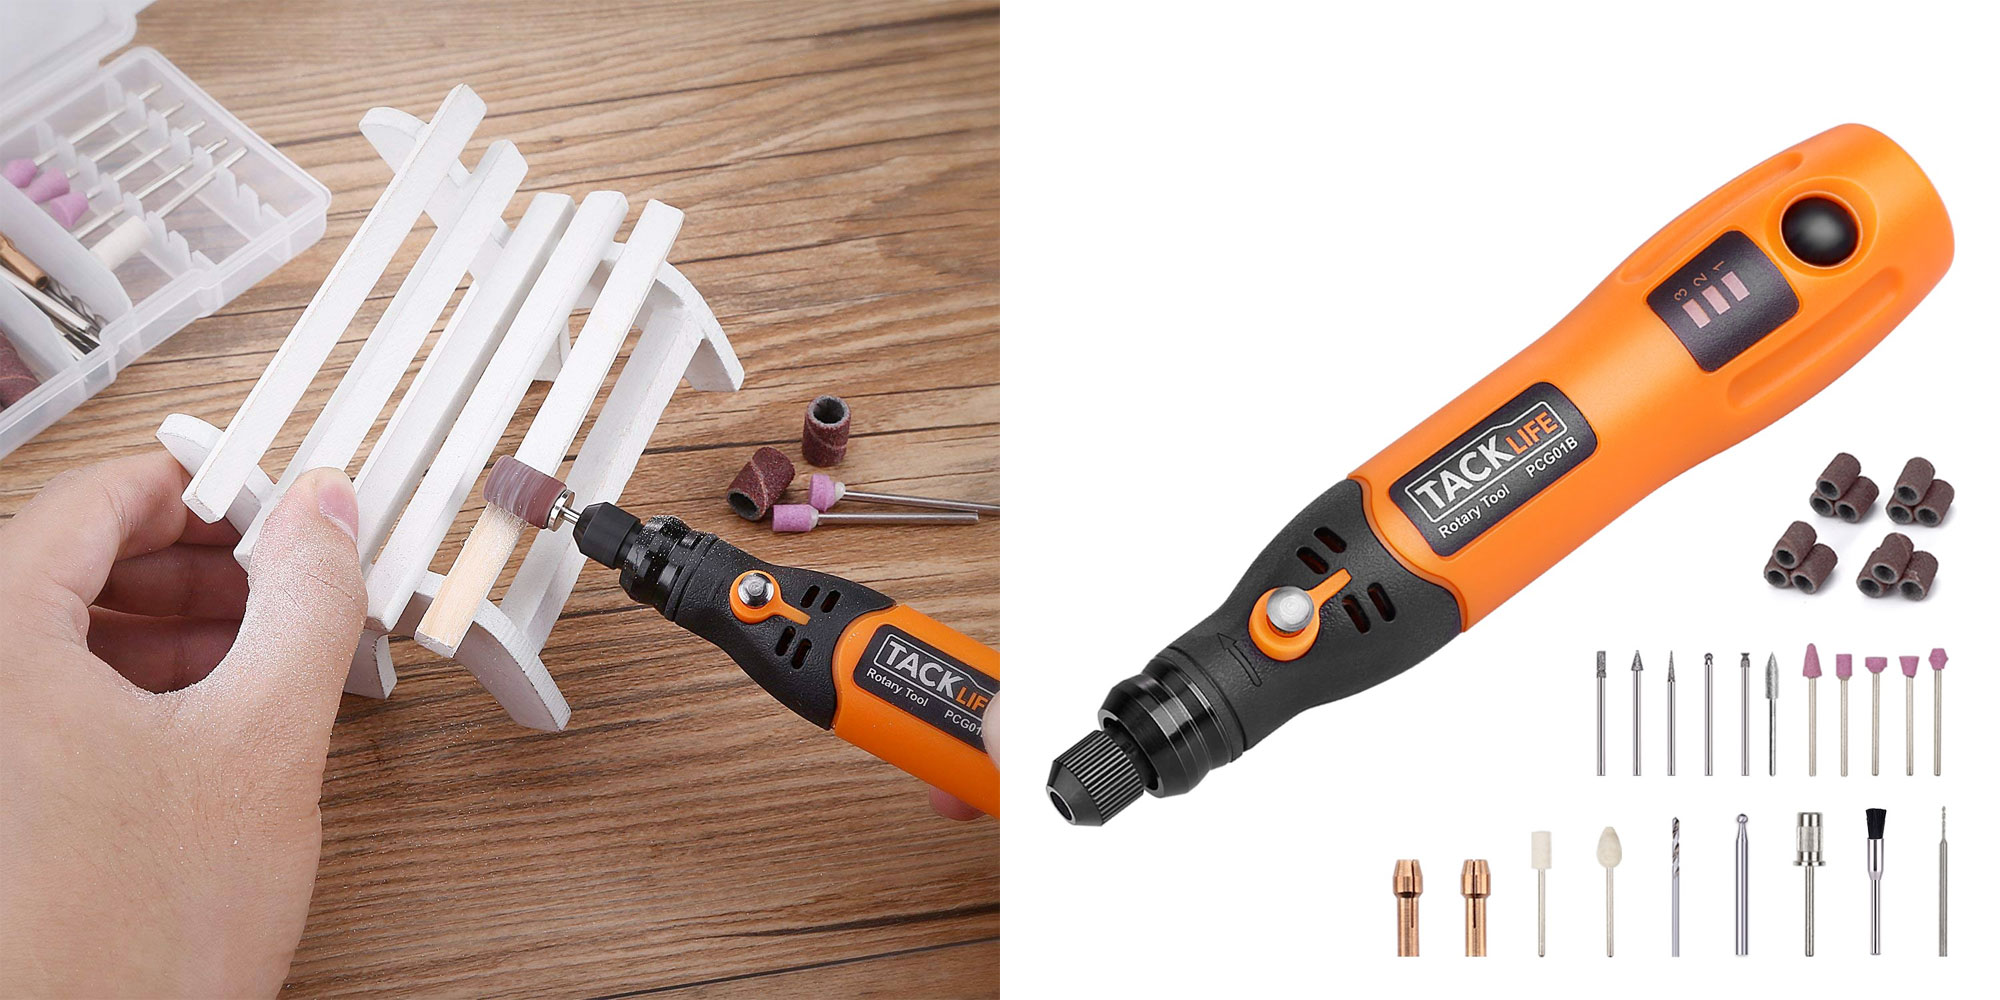 Tacklife's Cordless Rotary Tool is ideal for around the house/DIY crafts, now $16 (Reg. $23)